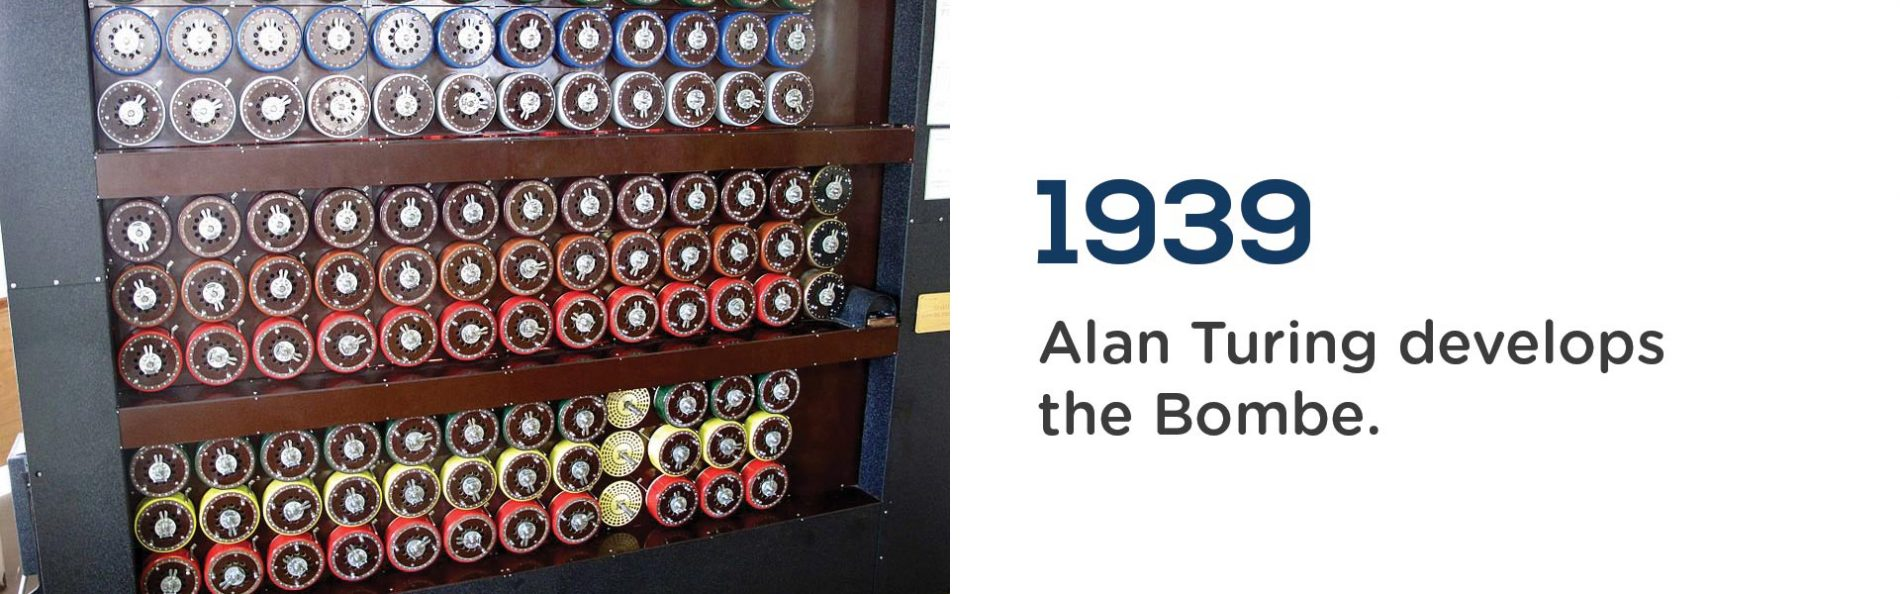 Alan Turing develops the Bombe in 1939.Wrigley Claydon Solicitors, Trusted for 200 years